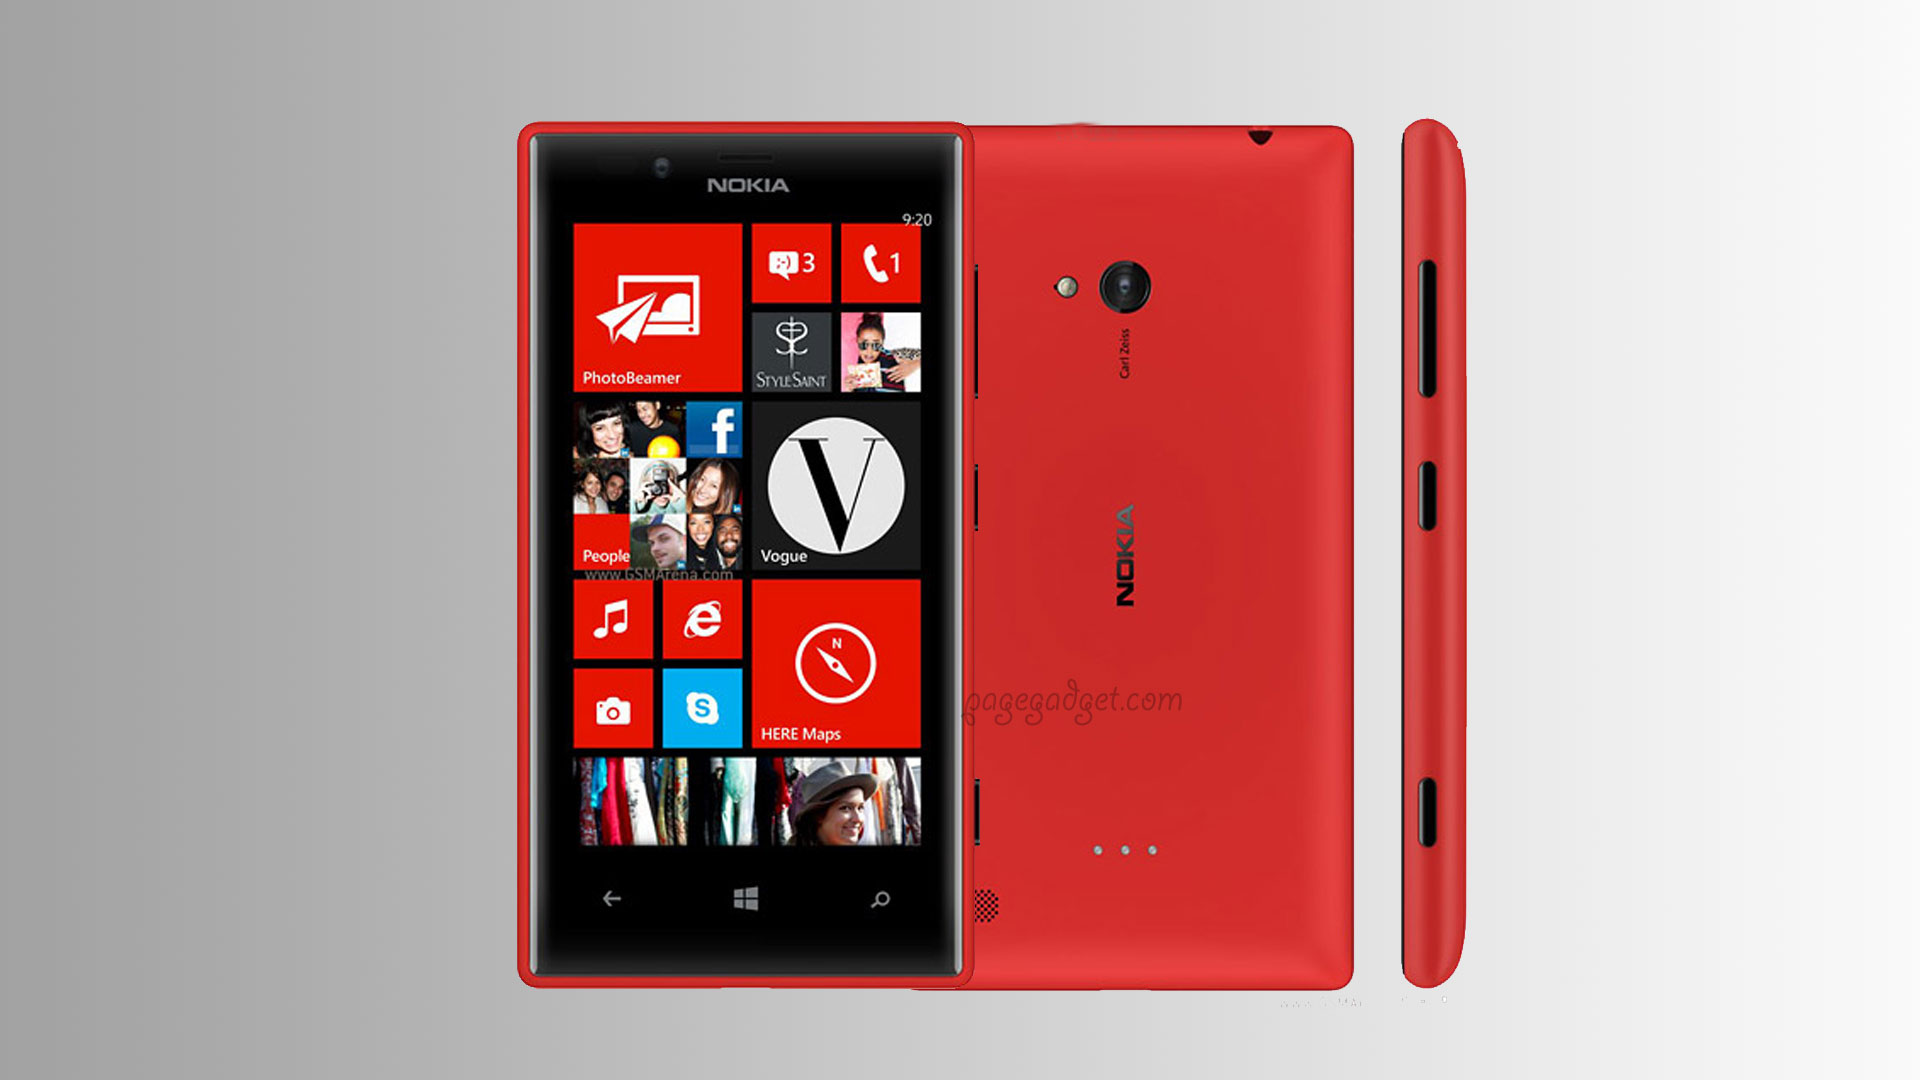 Nokia Lumia 720 release date March 2013   Pagegadget HD Wallpaper